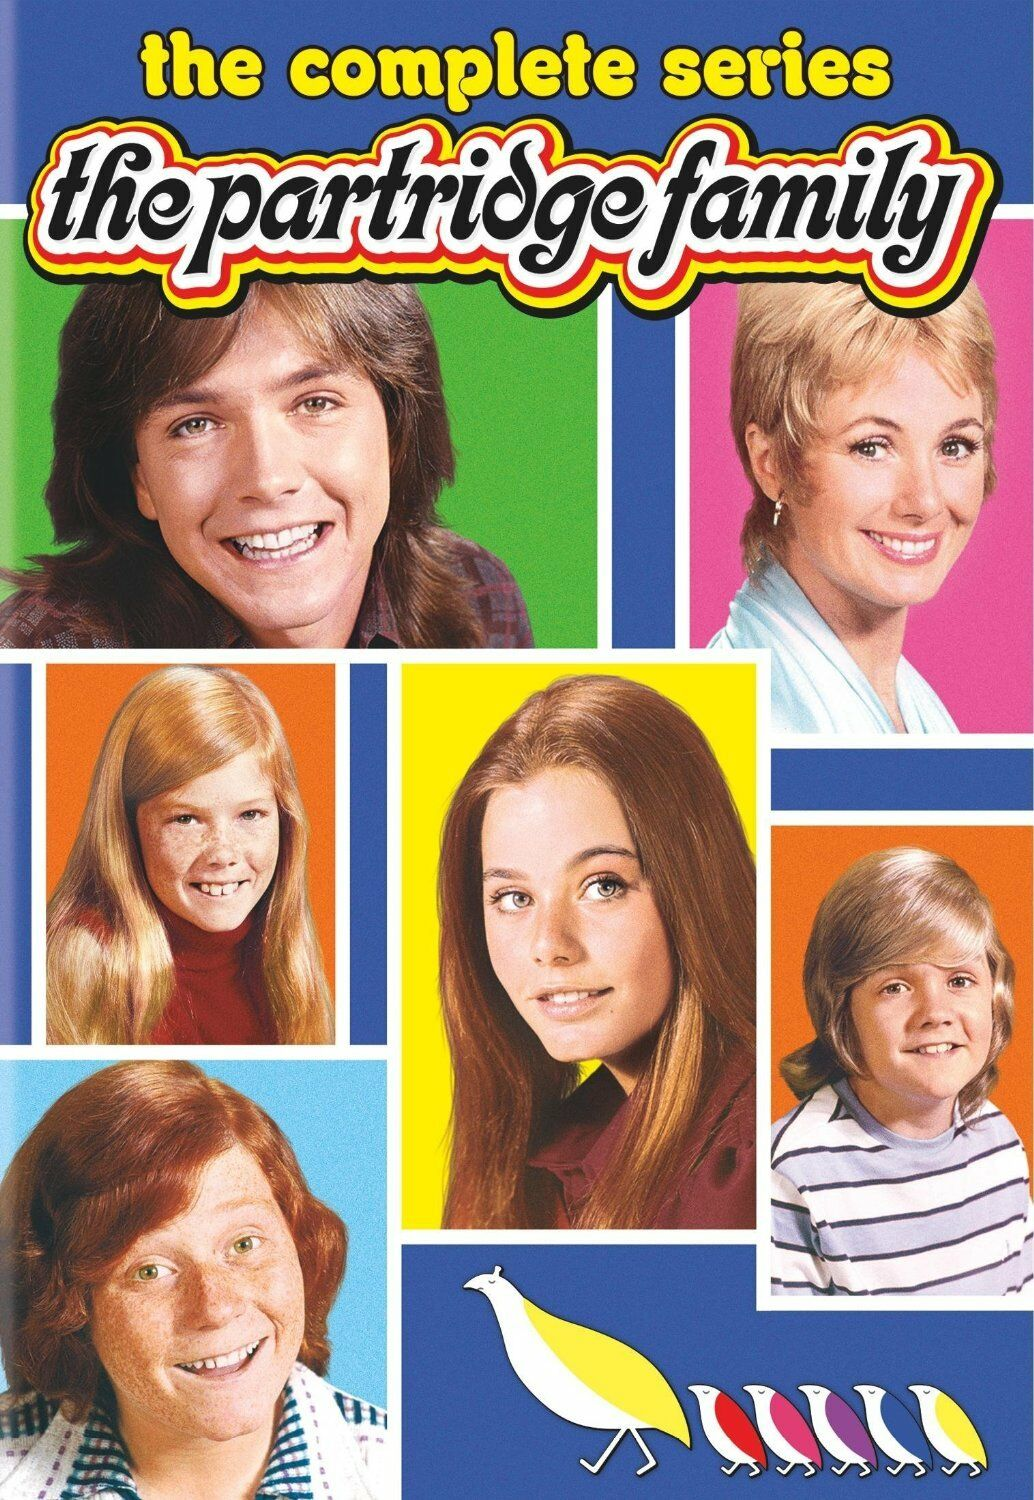 The Partridge Family #3 - Keith, The Hero (Michael Avallone - 1970) (ID:19171)